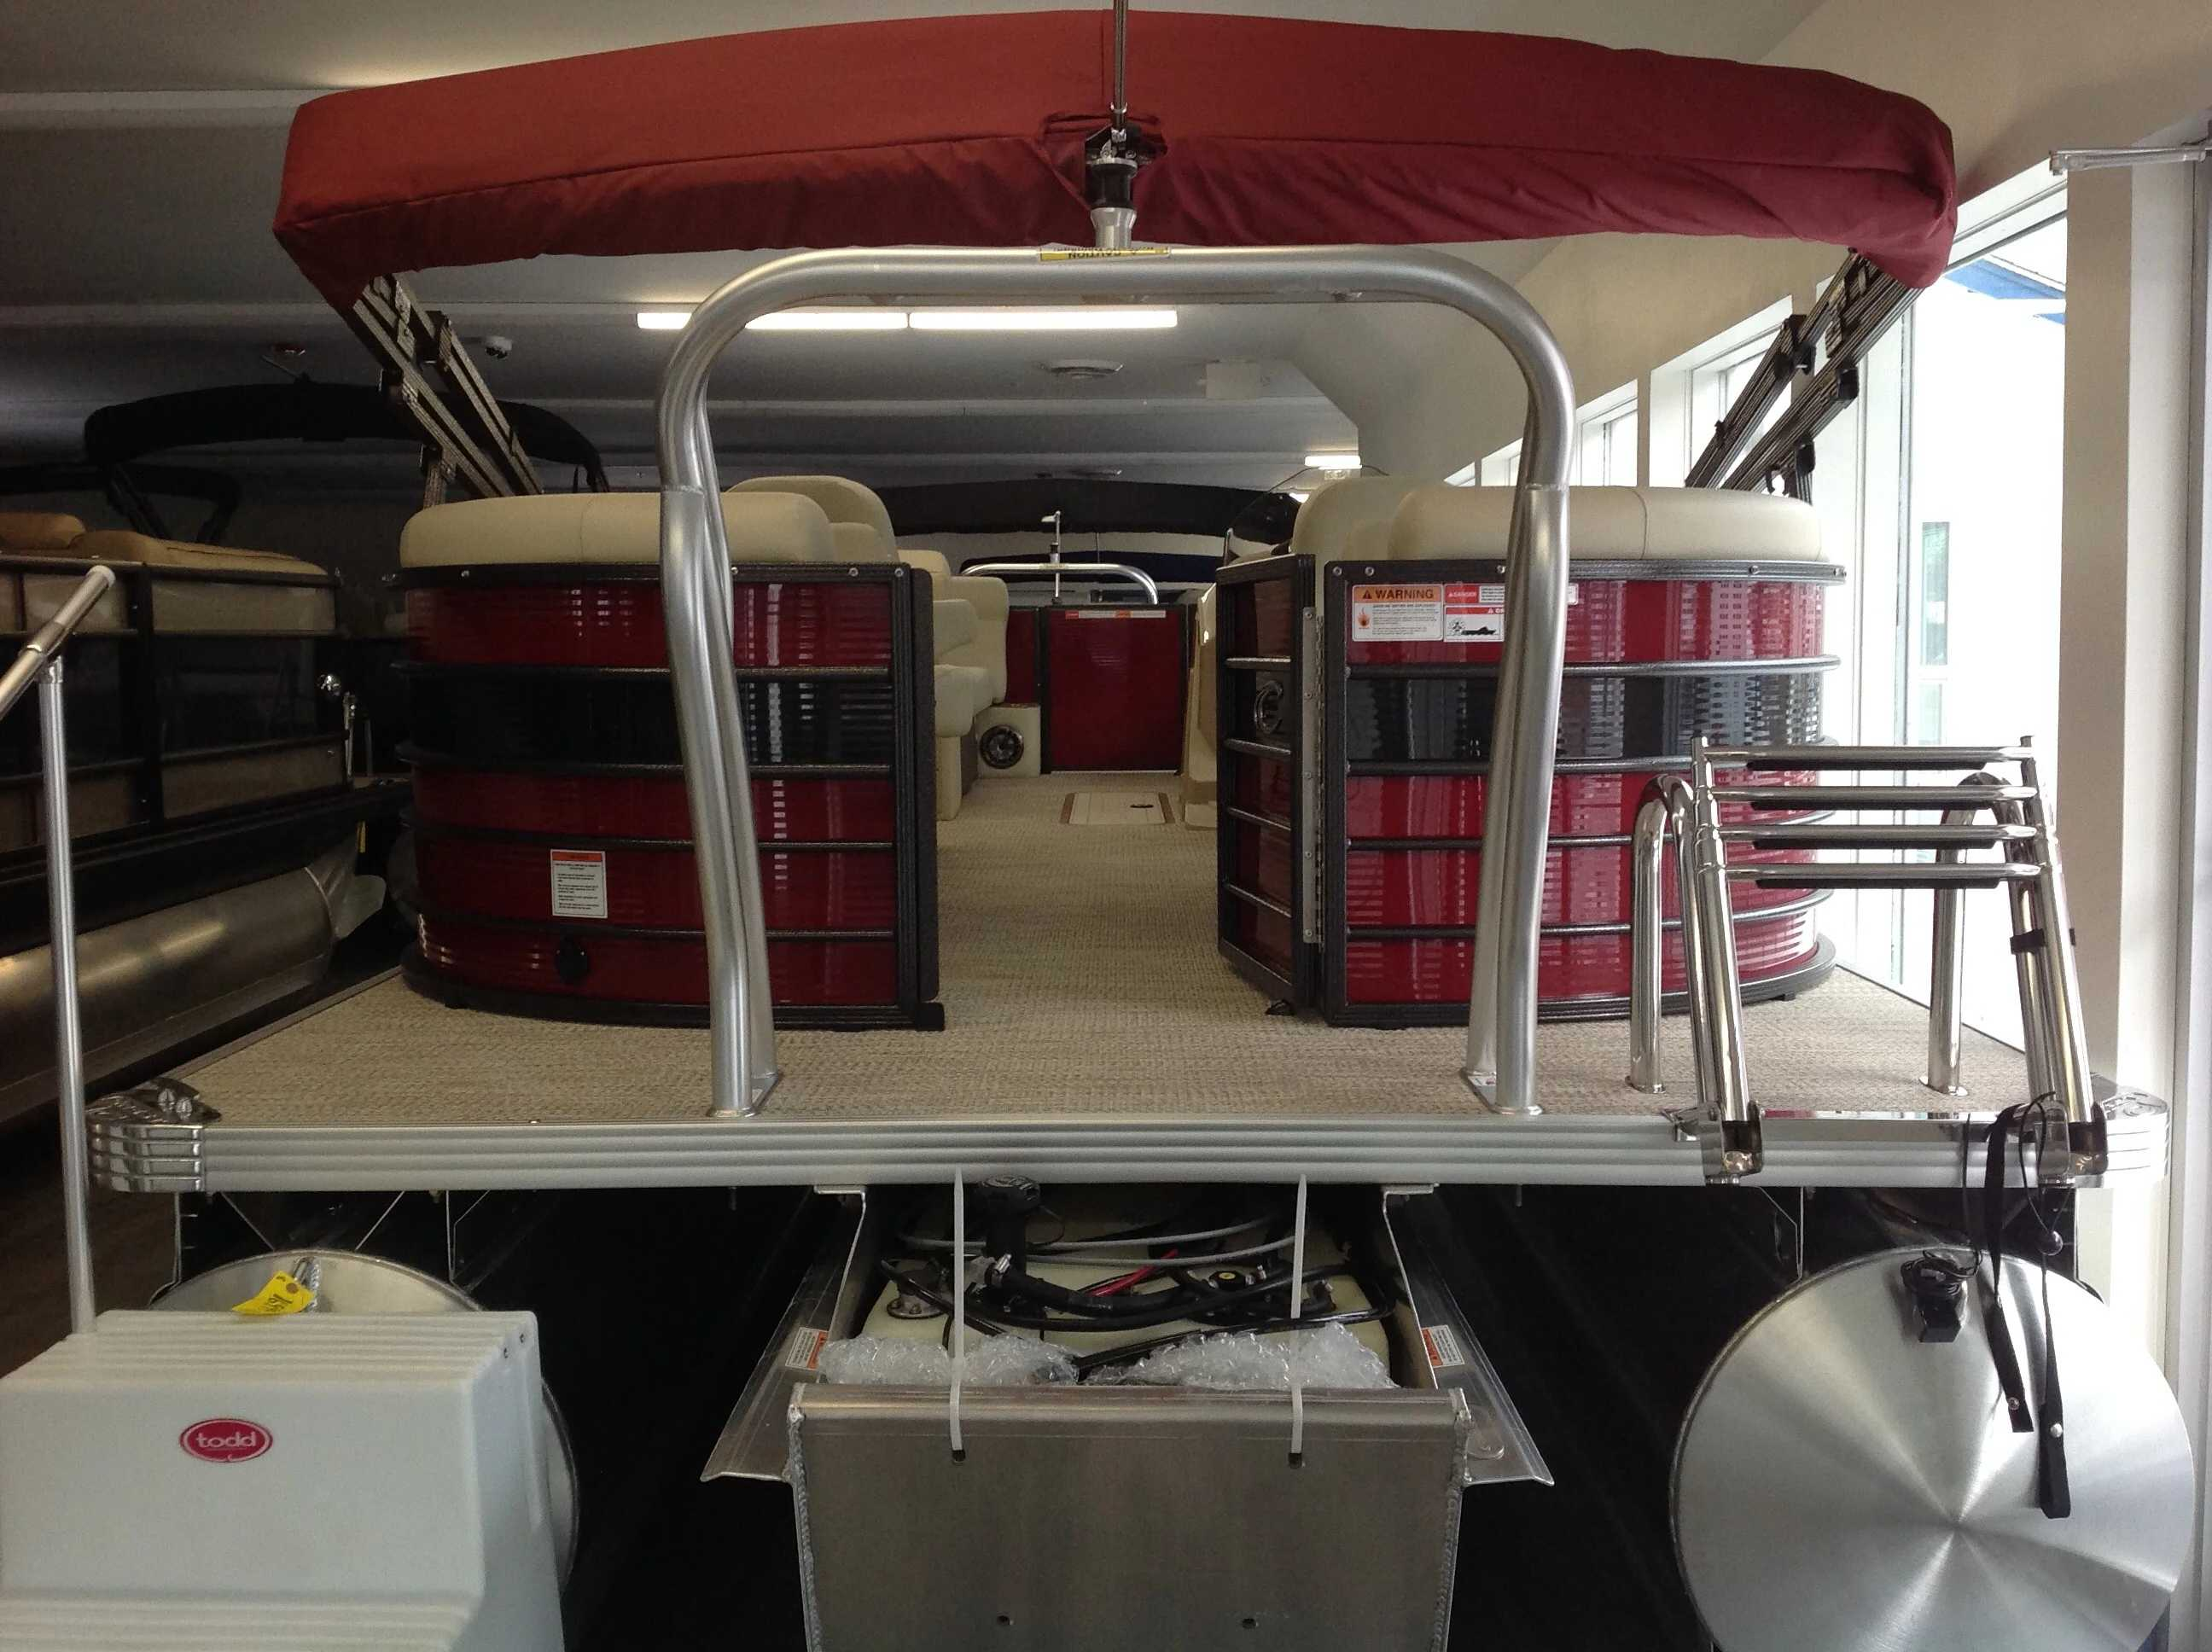 2021 Crest boat for sale, model of the boat is Cl Dlx 220slc & Image # 15 of 15